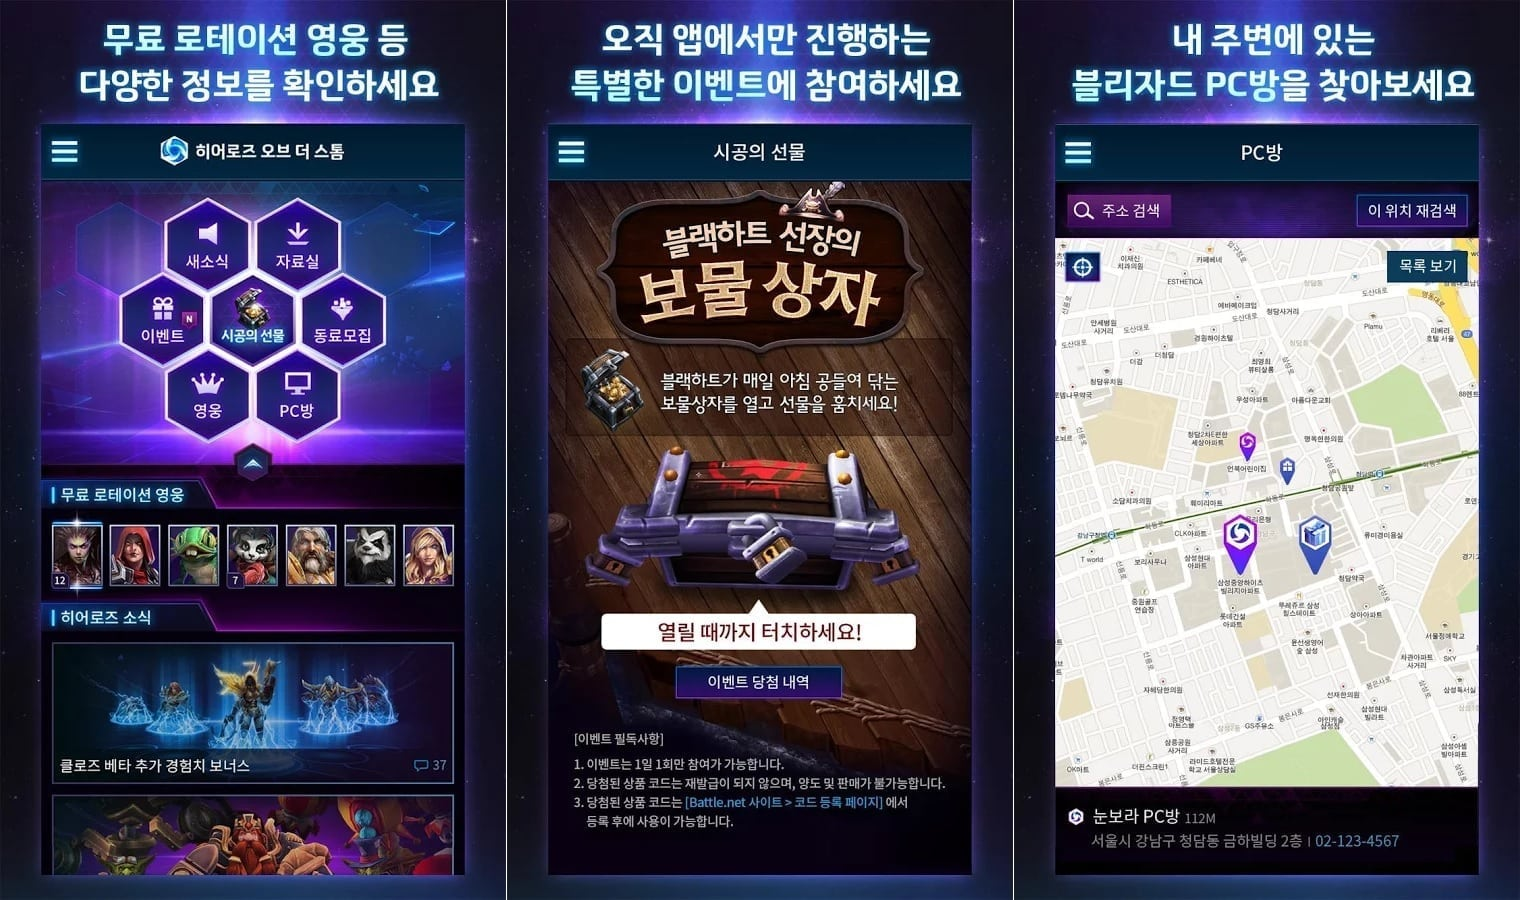 Heroes of the Storm - South Korea mobile app